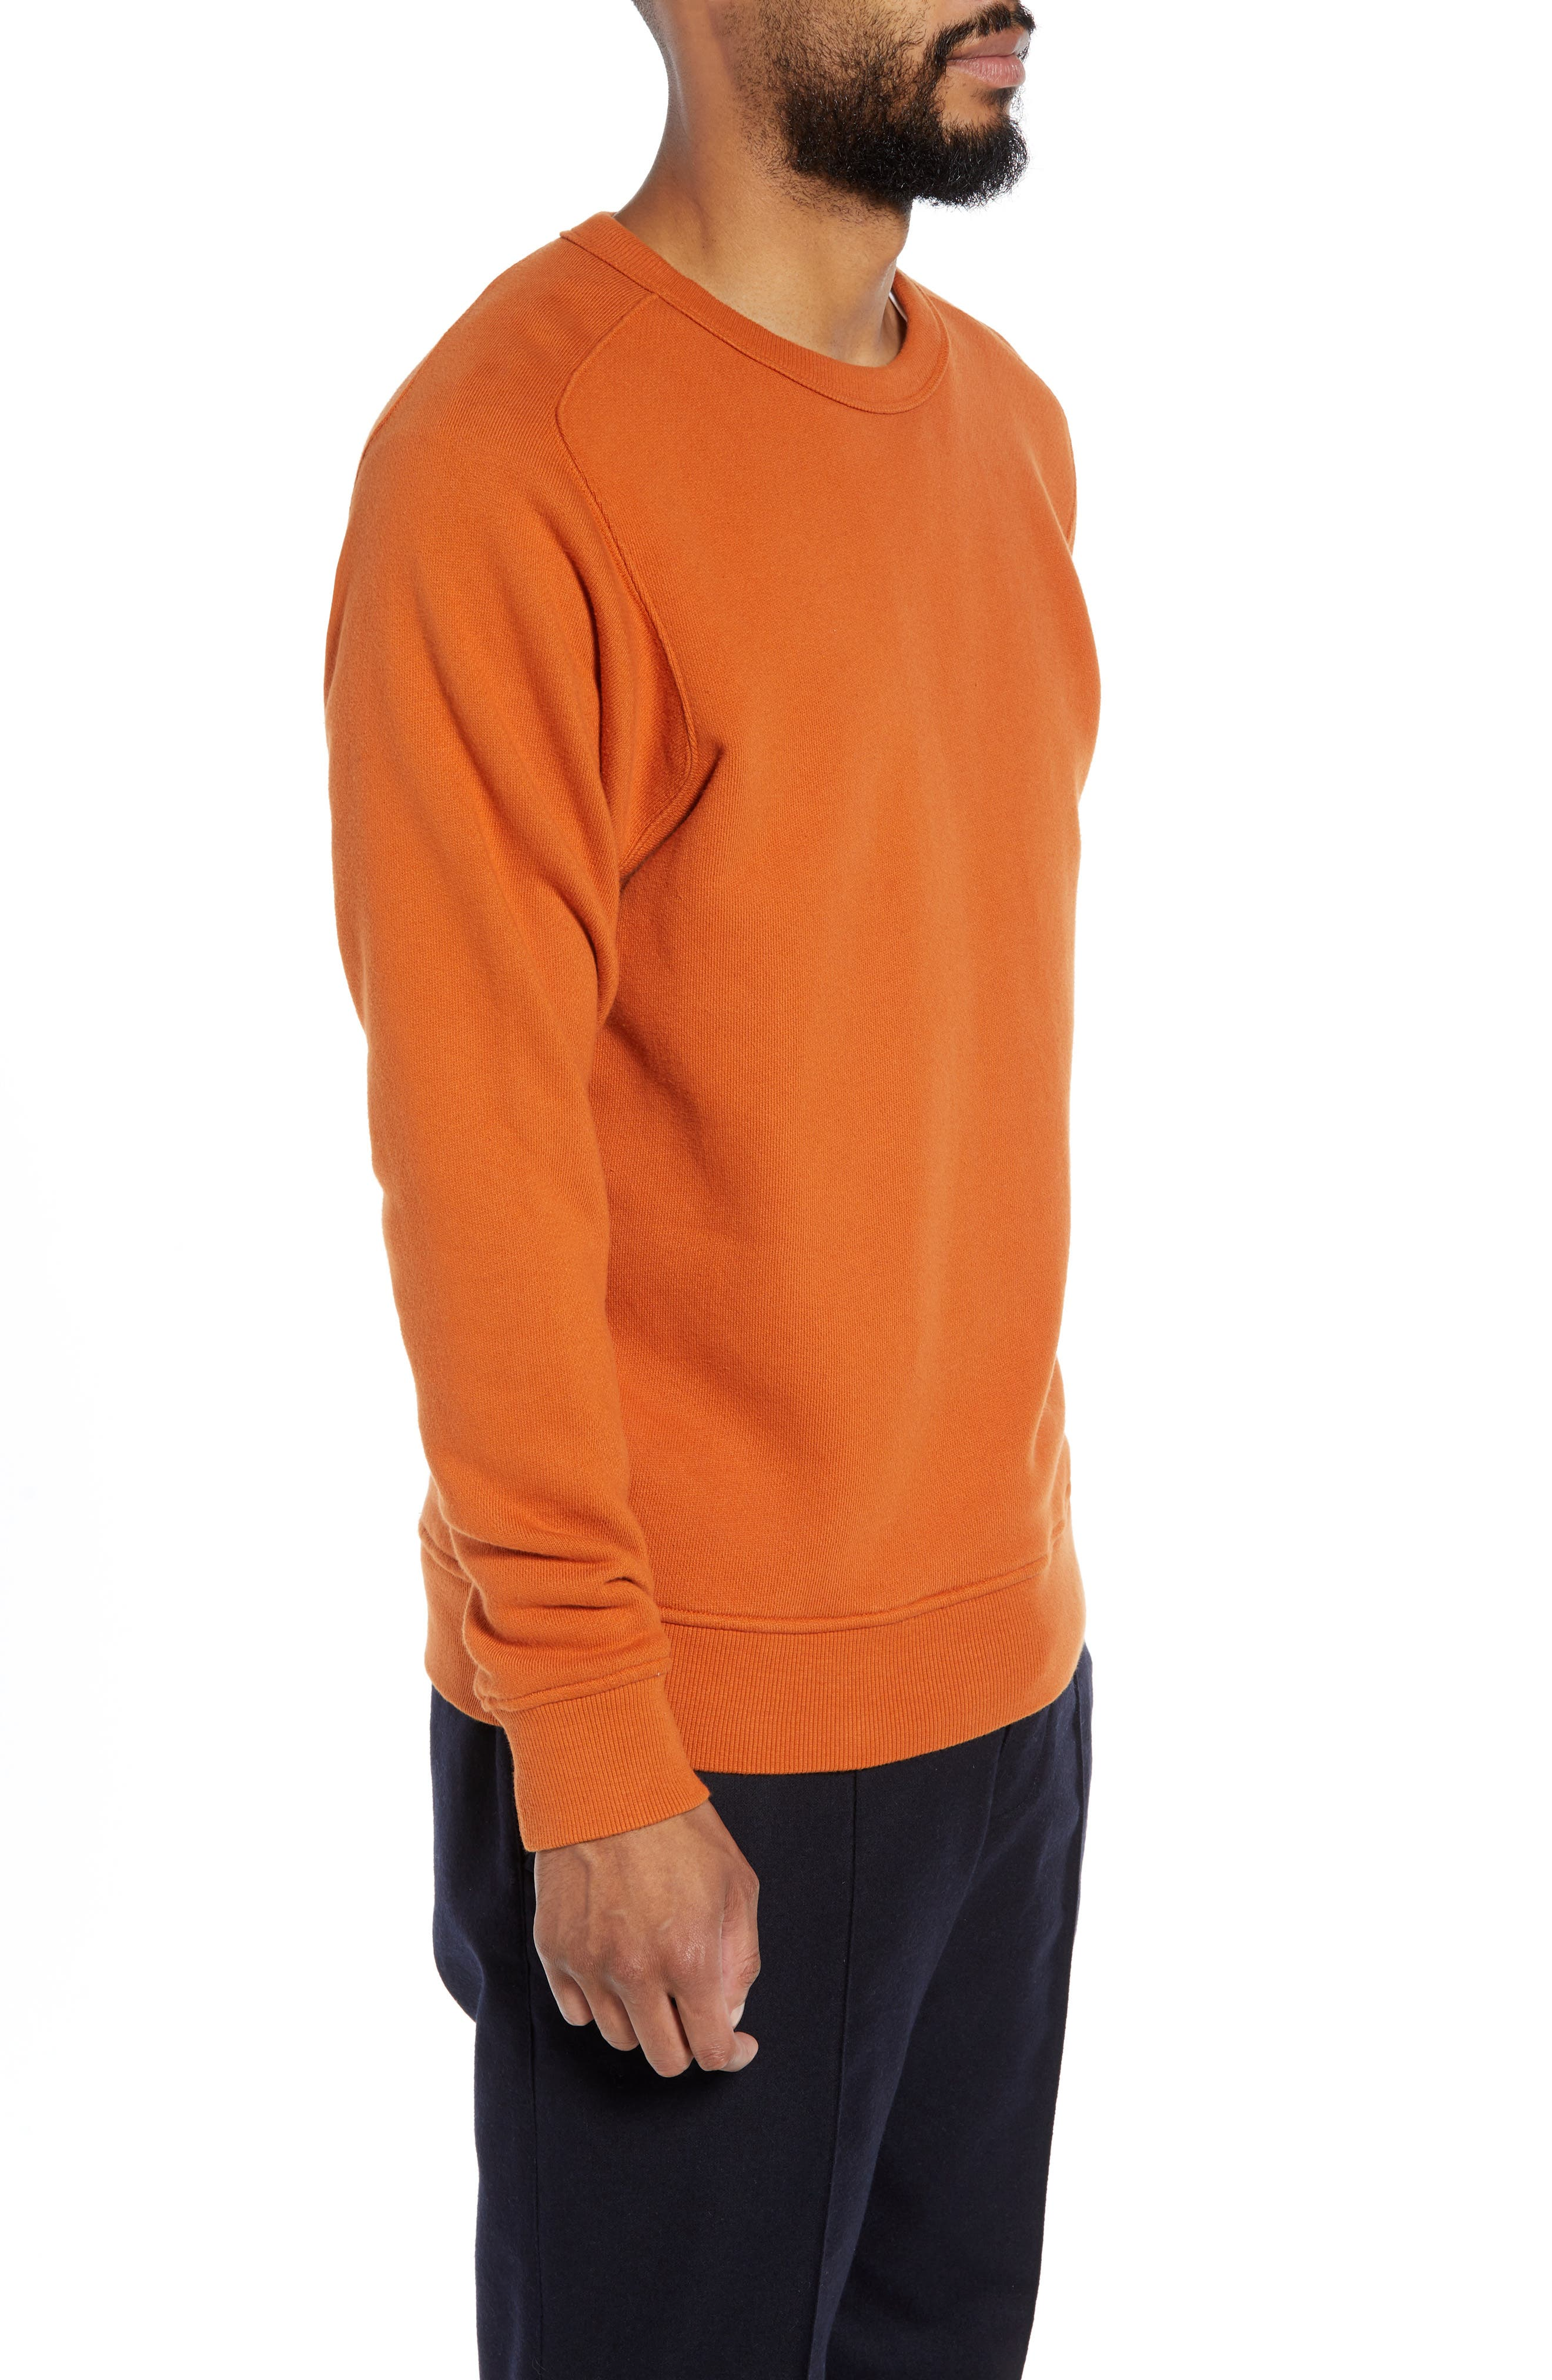 Almost Grown Crewneck Sweatshirt,                             Alternate thumbnail 3, color,                             RUST